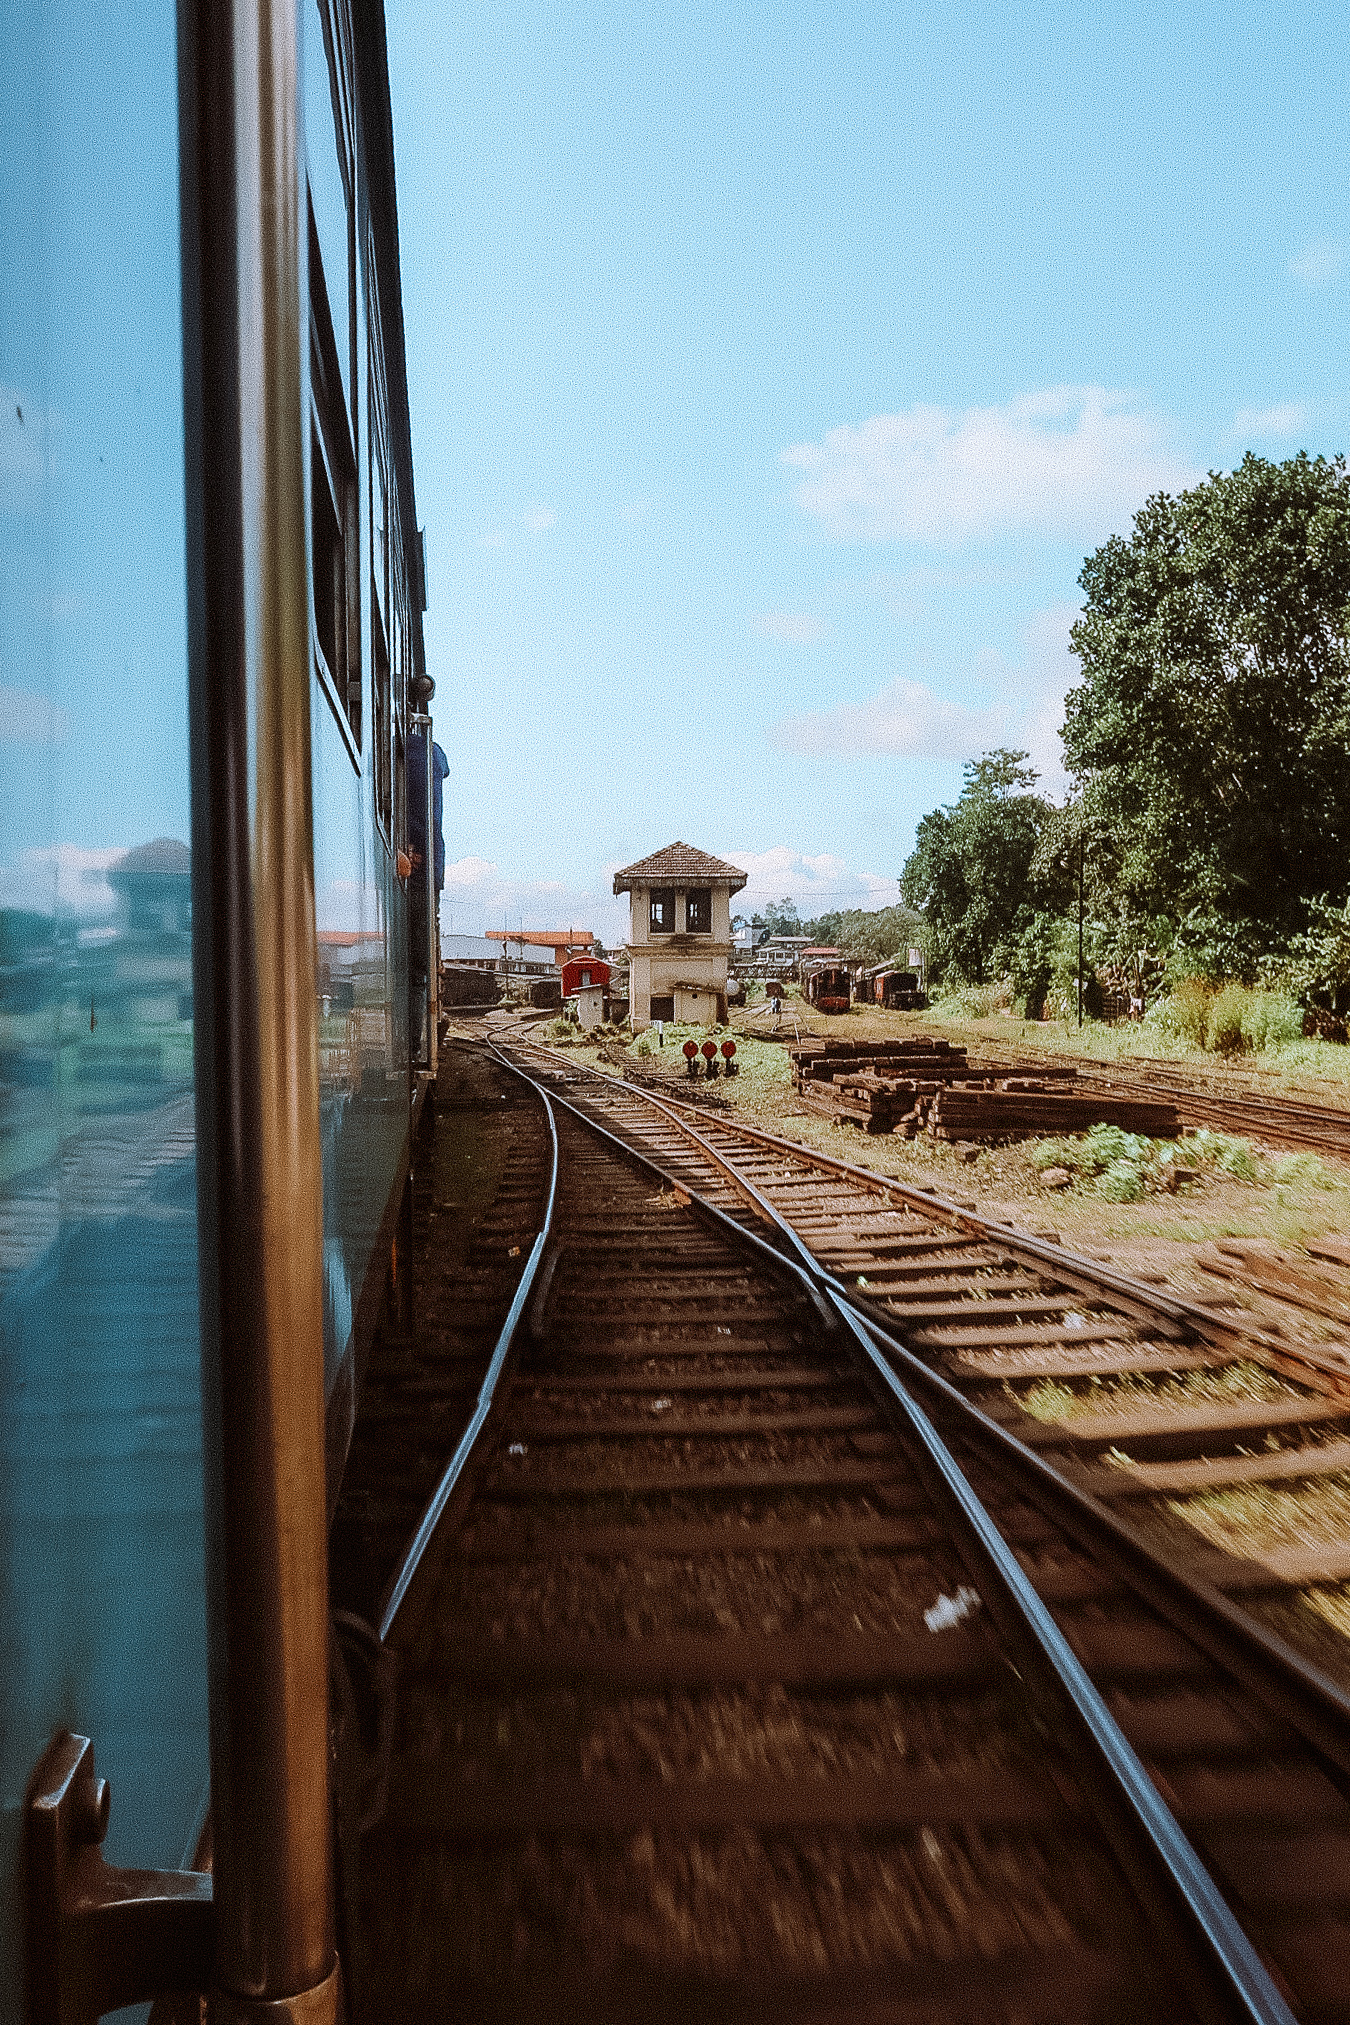 Illustrated by Sade - Moving train and tracks of the Kandy to Ella train.